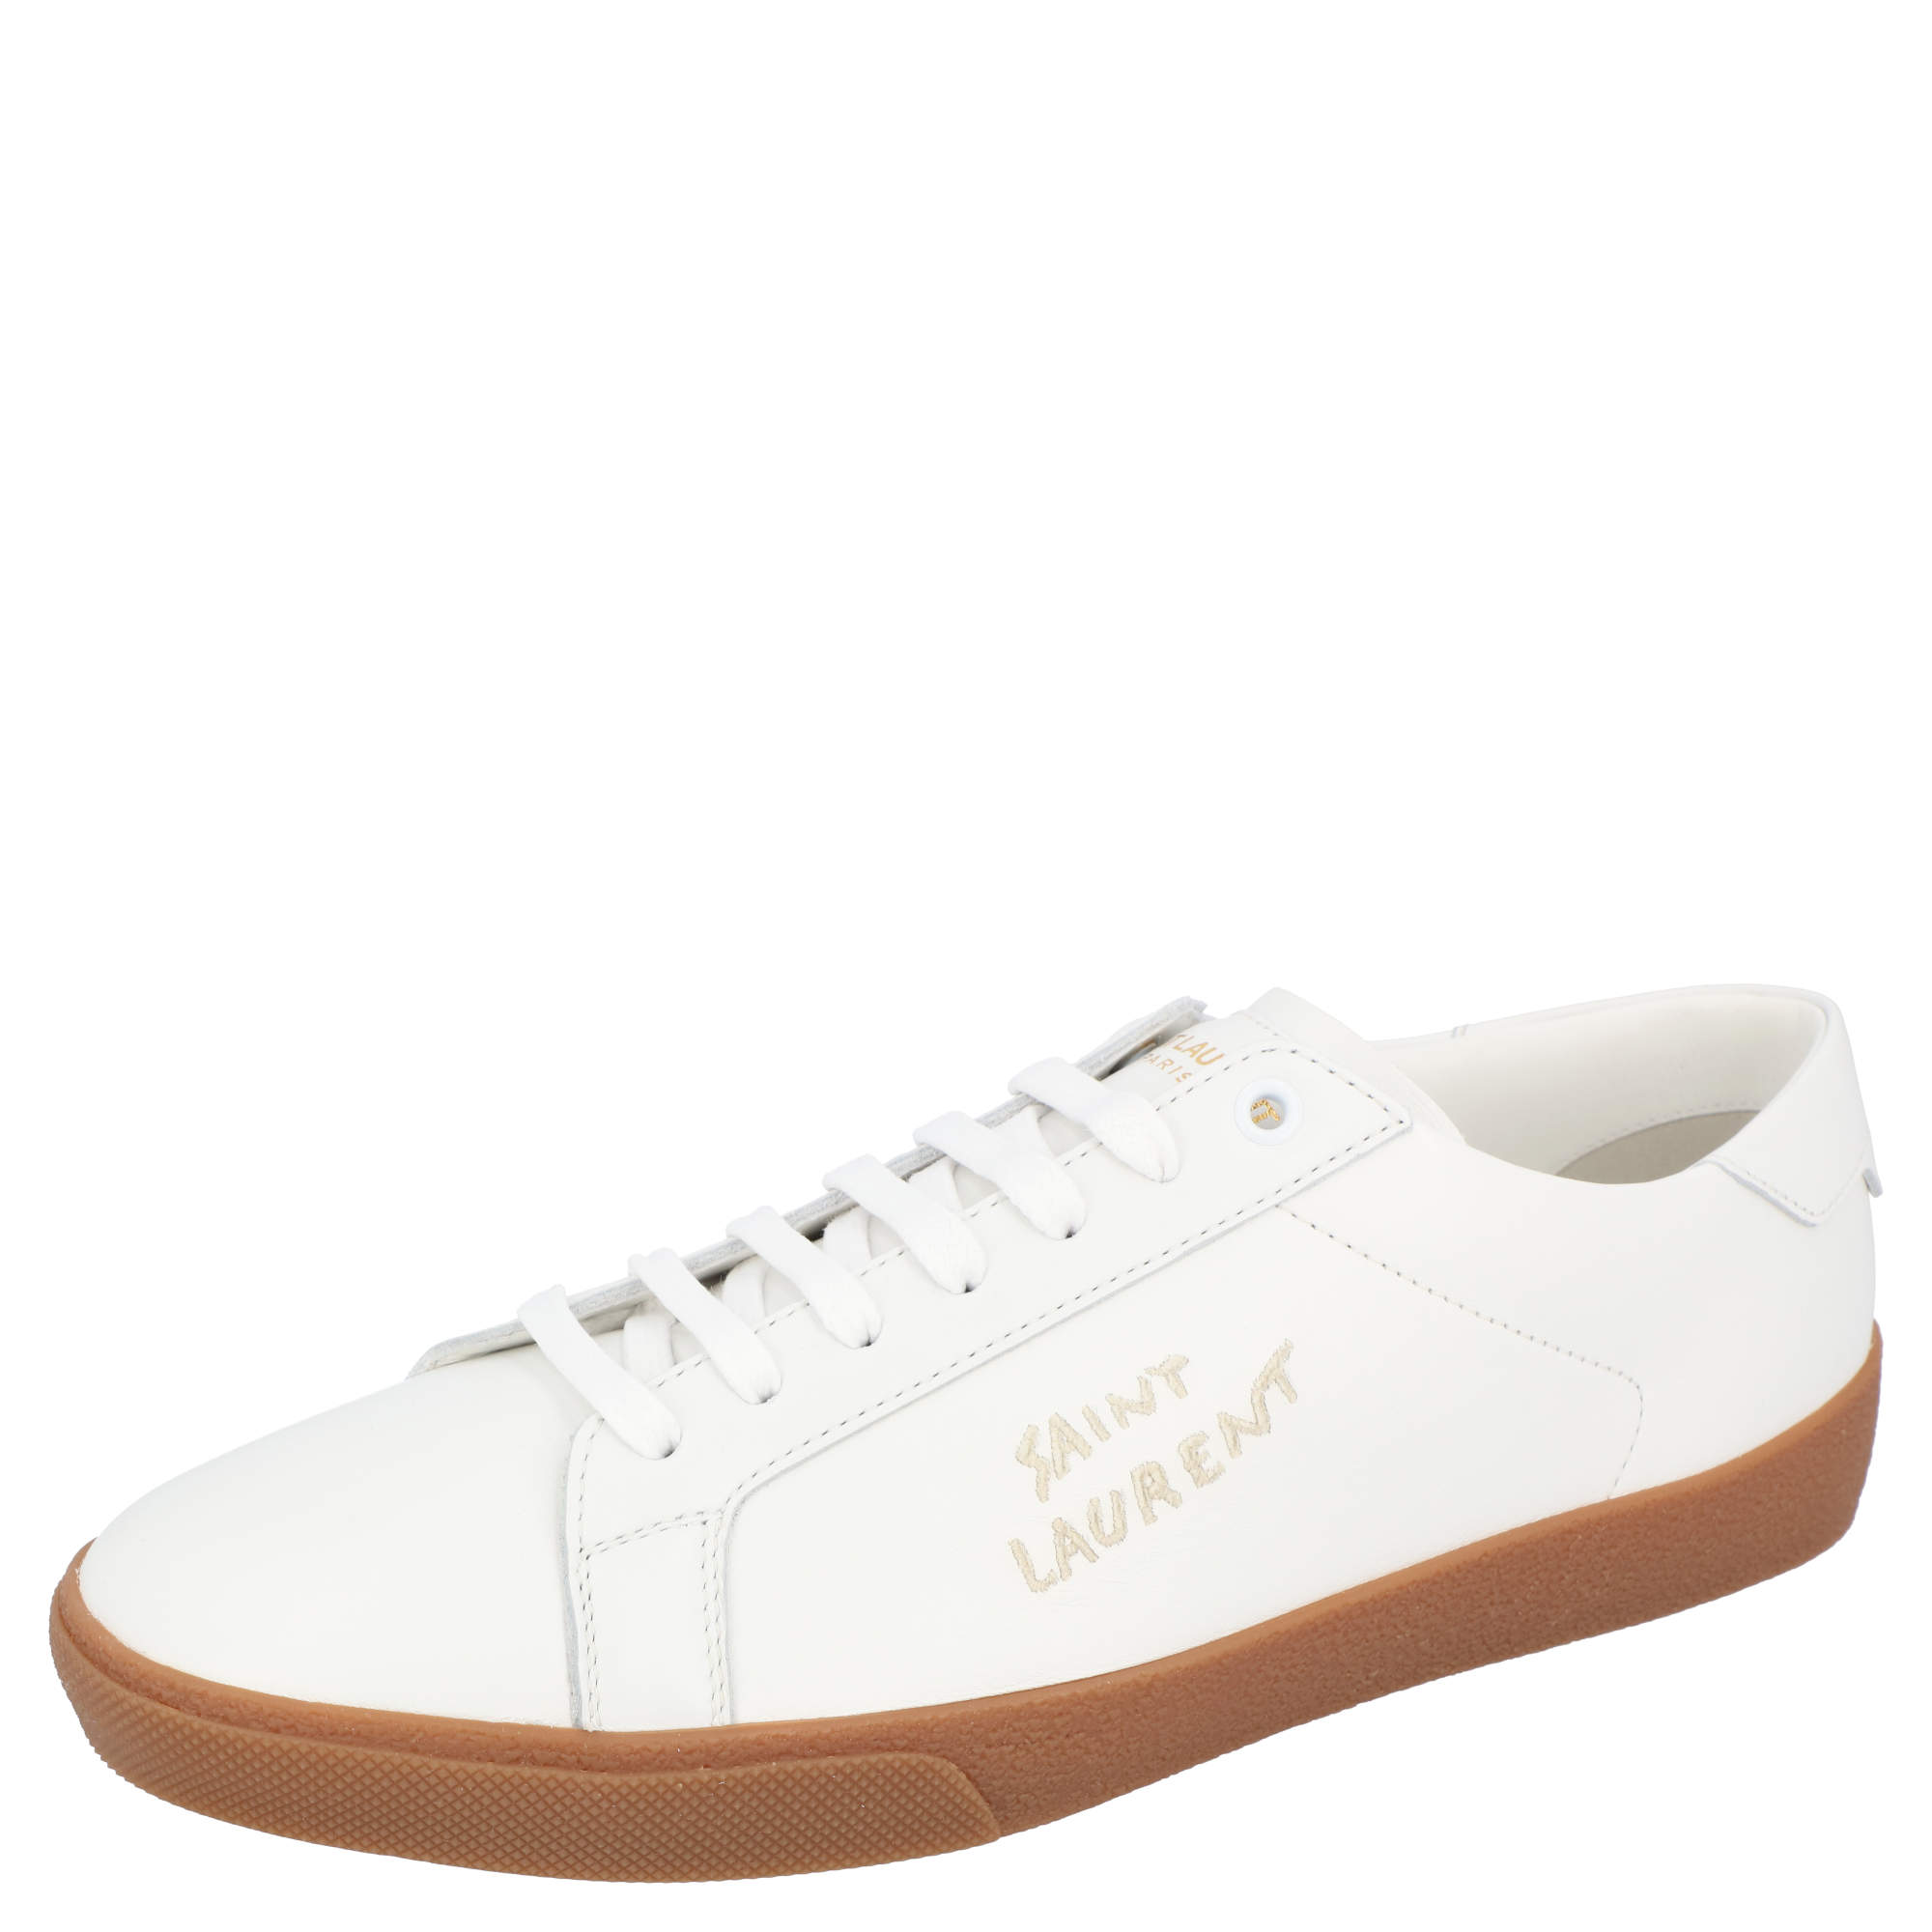 Saint Laurent White Leather SL/06 Embroidered Court Classic Sneakers Size EU 42.5